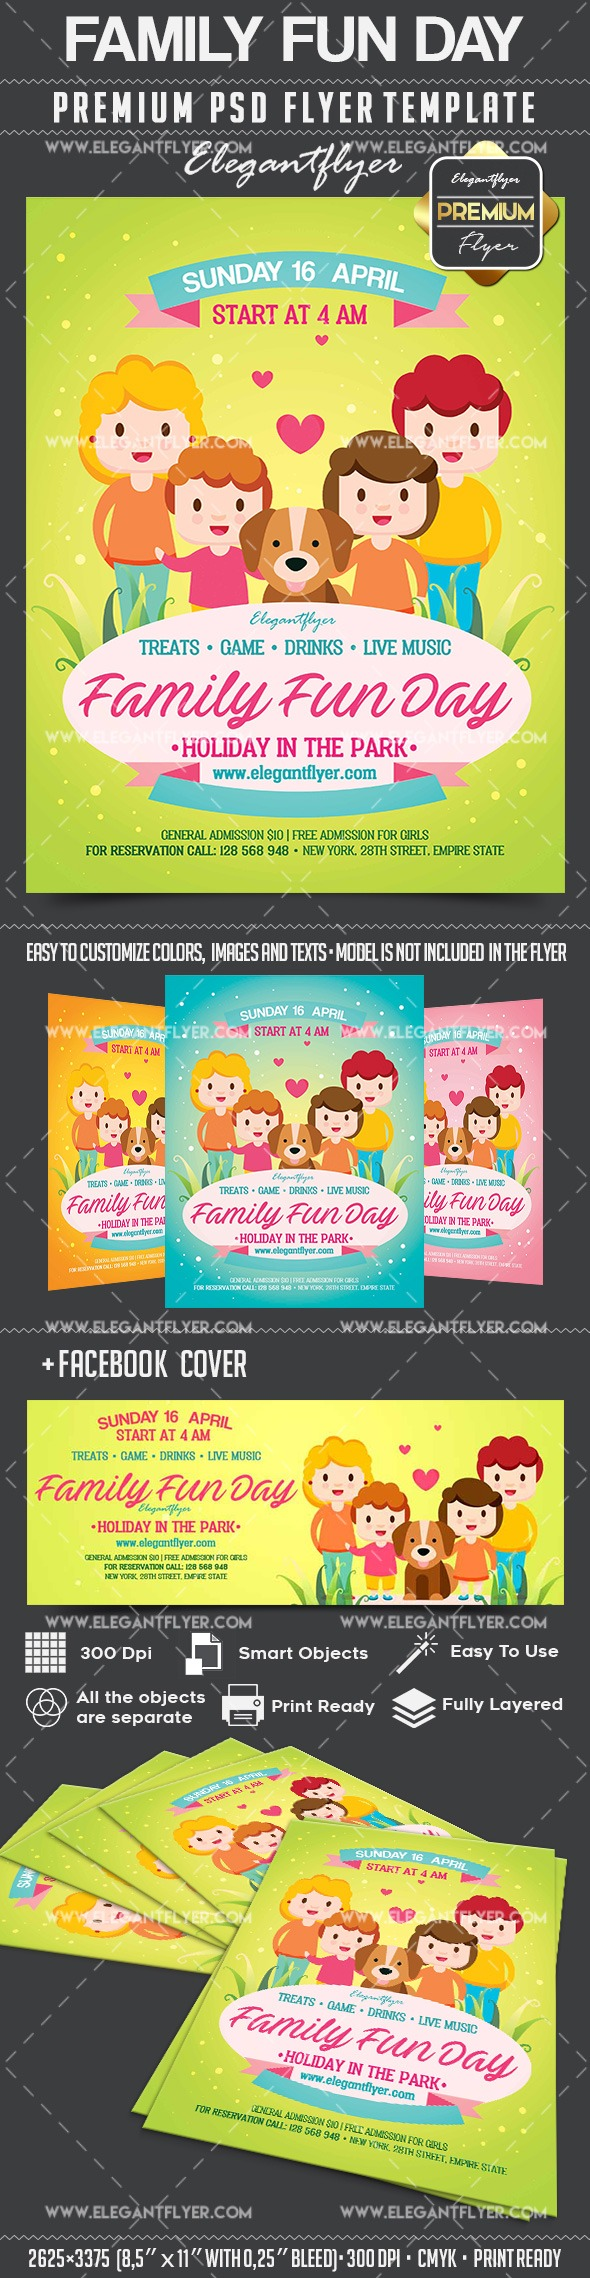 Family fun day flyer psd template by elegantflyer for Fun brochure templates